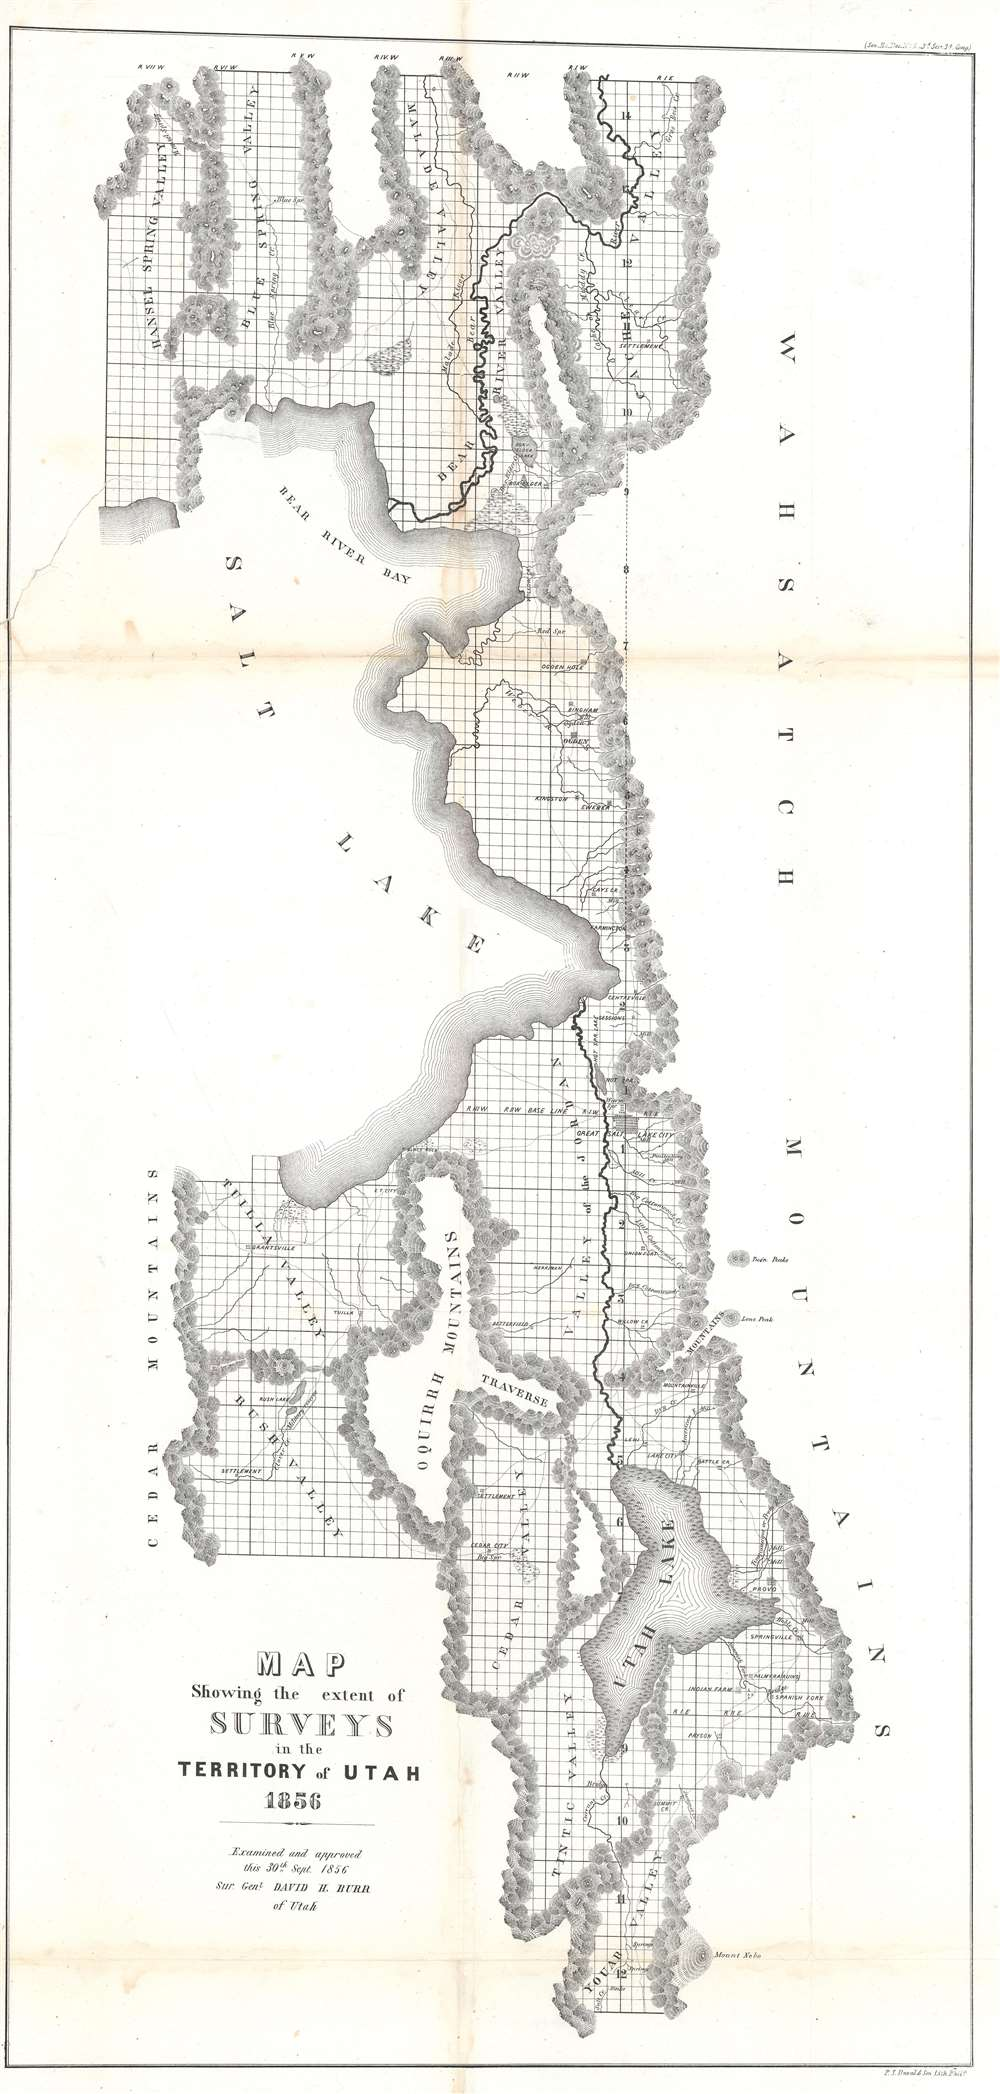 Map Showing the extent of Surveys in the Territory of Utah.